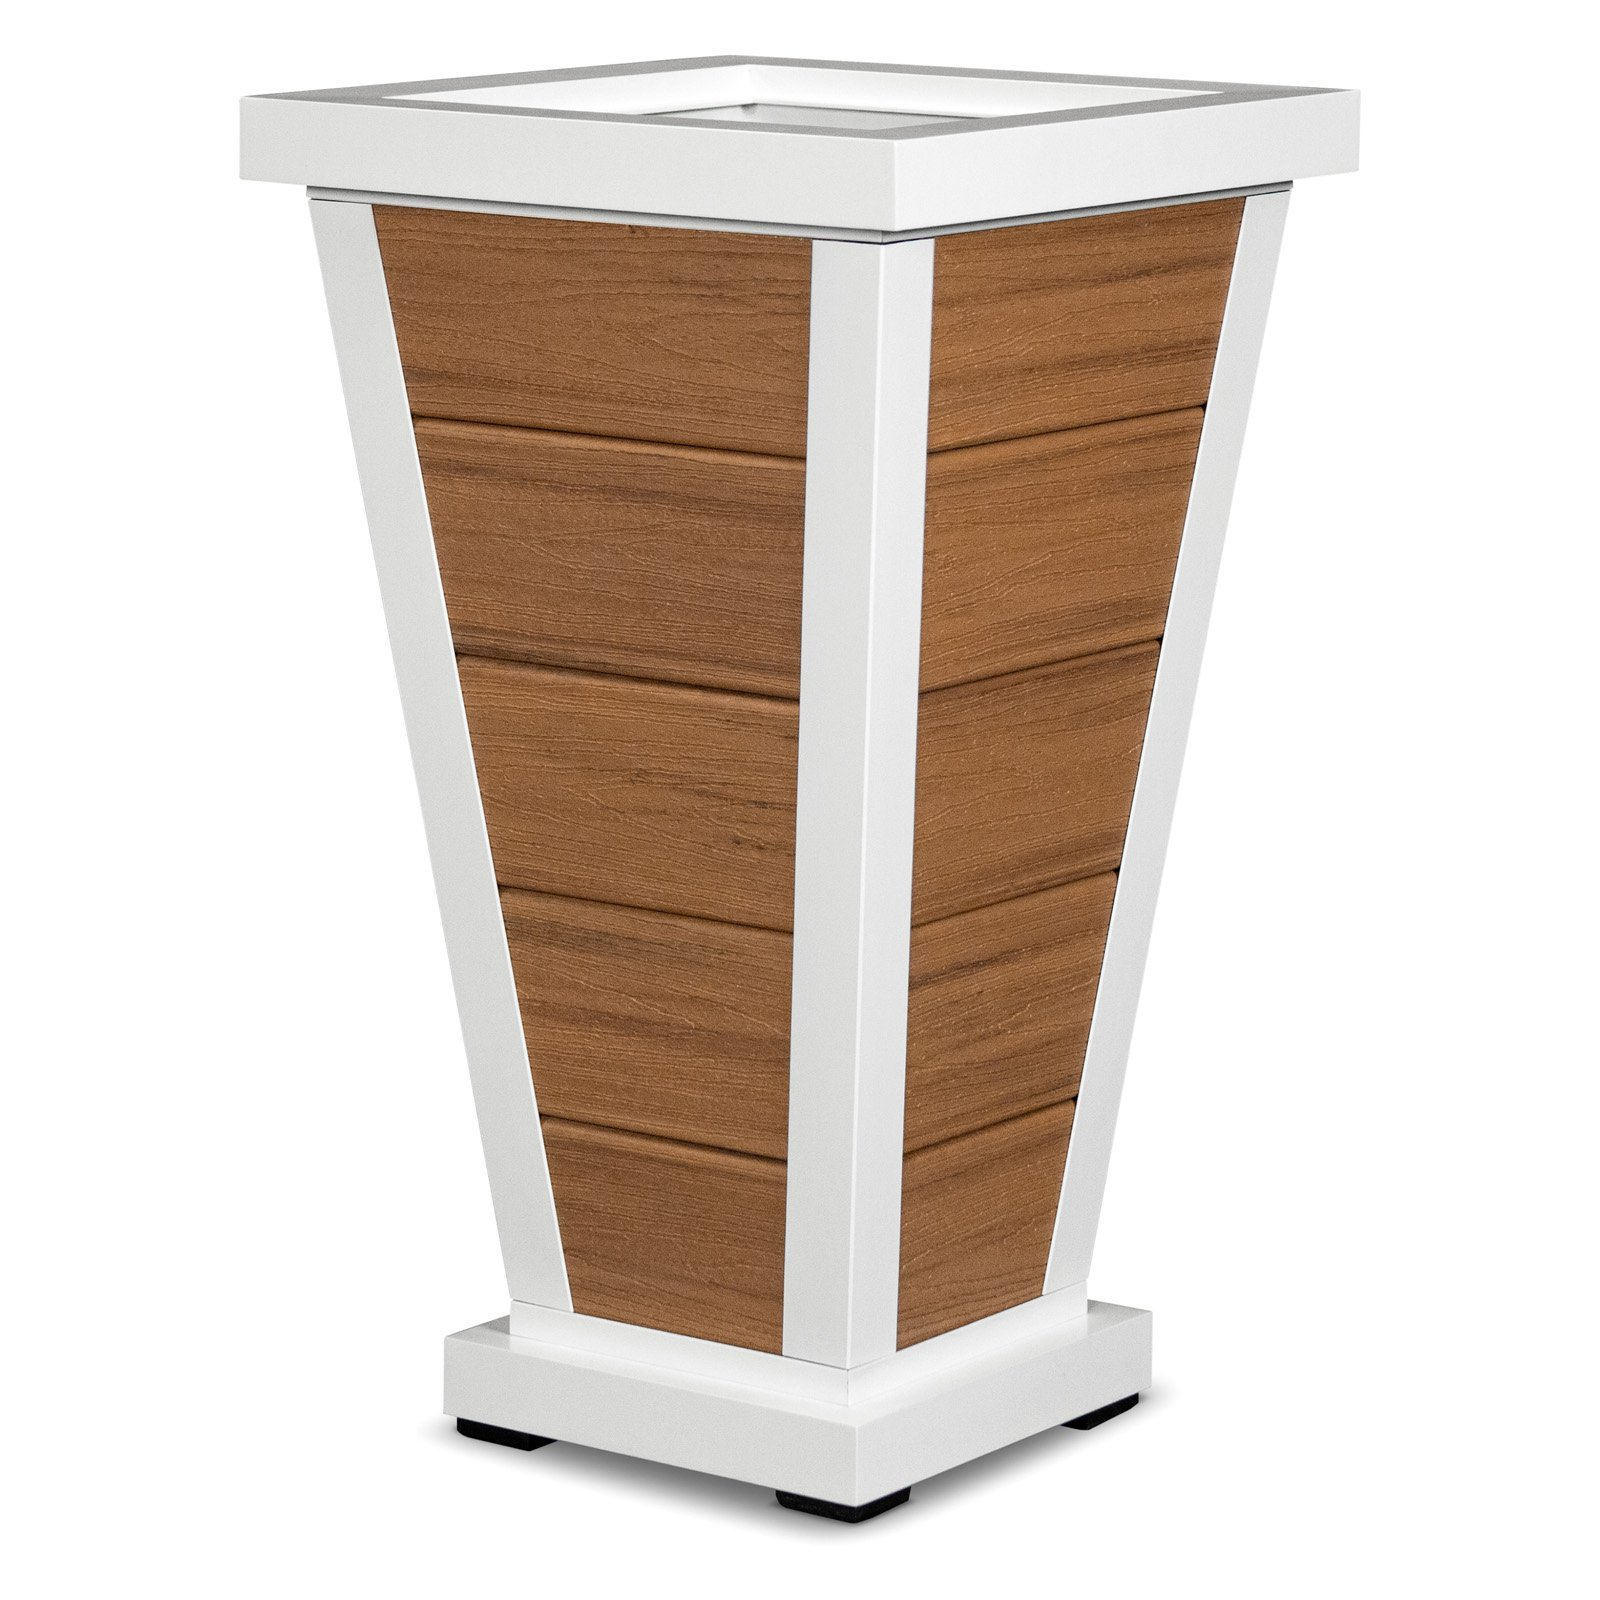 Trex Outdoor Furniture 18-in. 5-Board Pyramid Planter